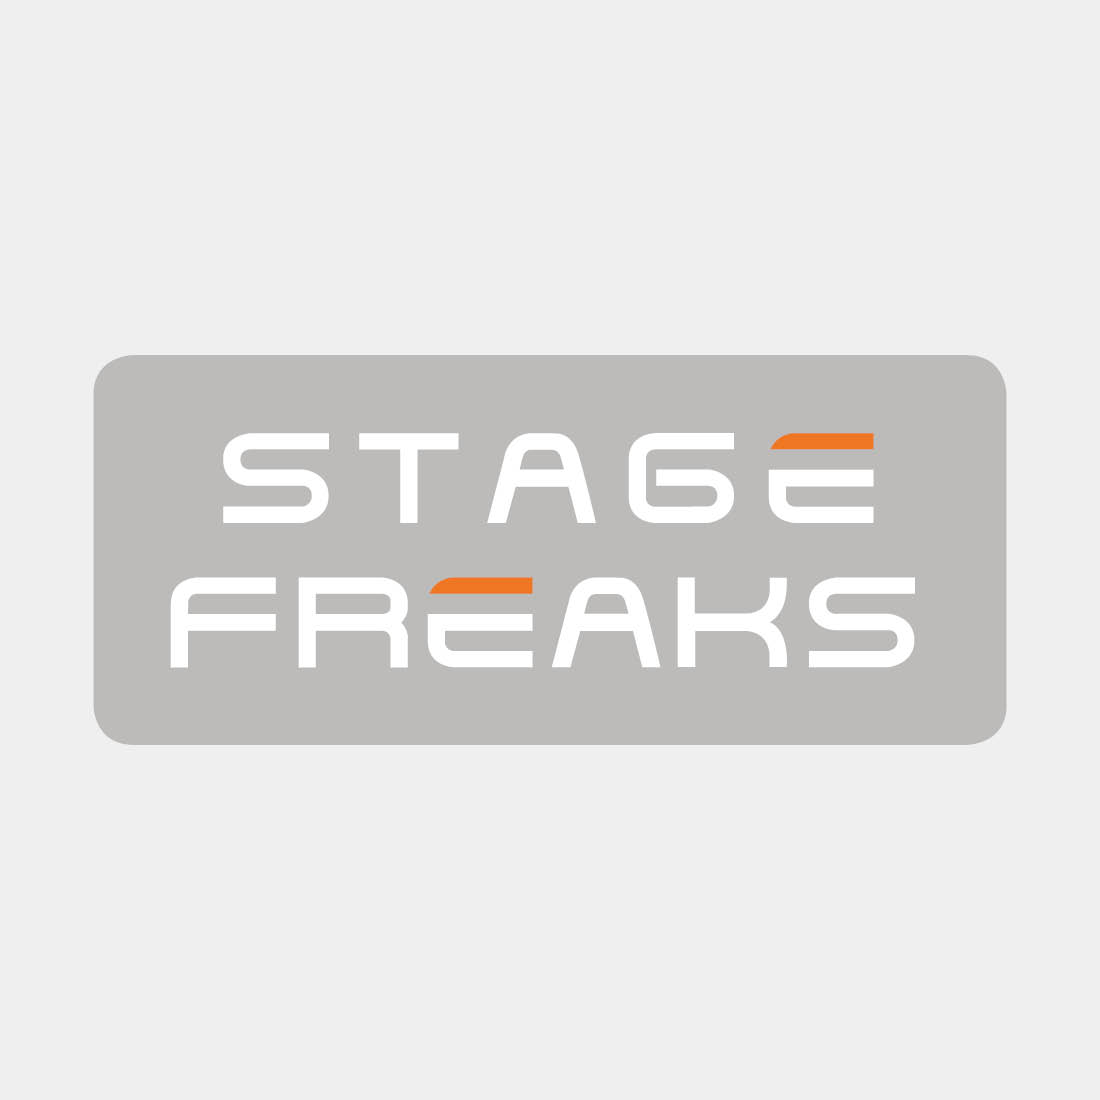 Stagefreaks CHECKED tape 25 mm x 66 m